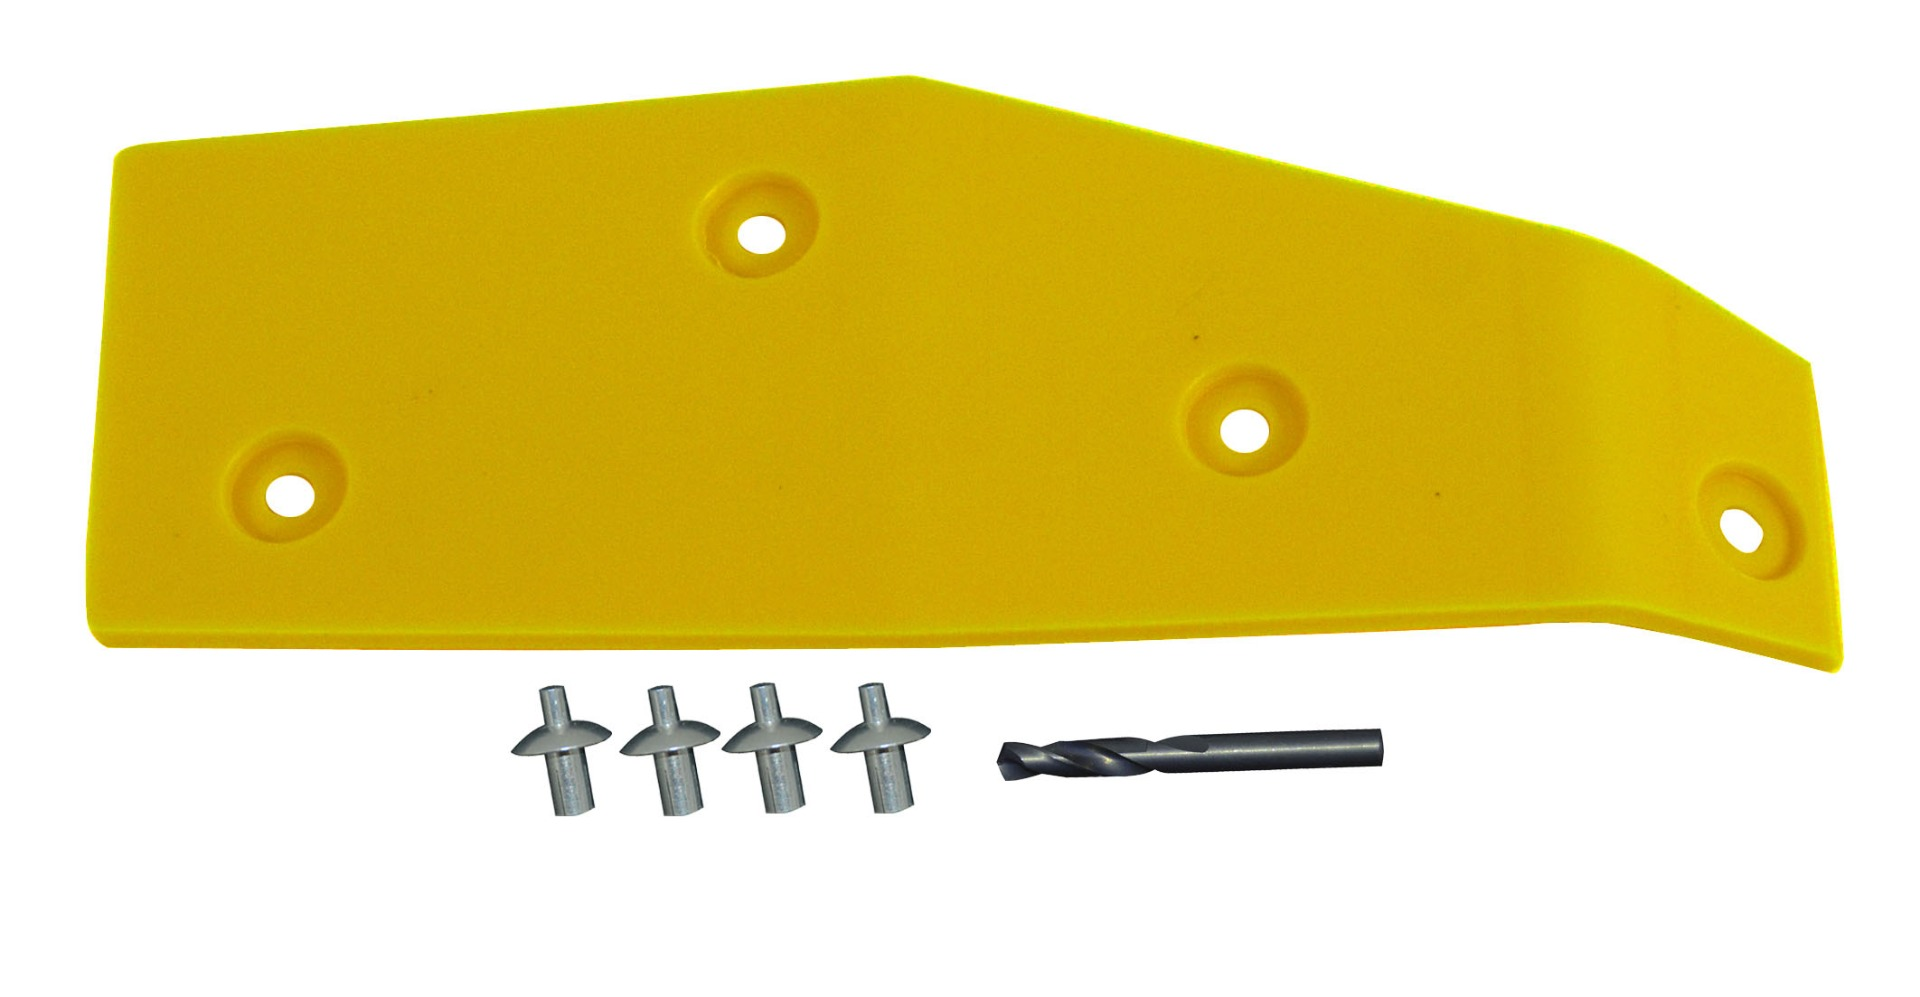 John Deere Flex Head Poly Skid RH 900F End Skid - Yellow